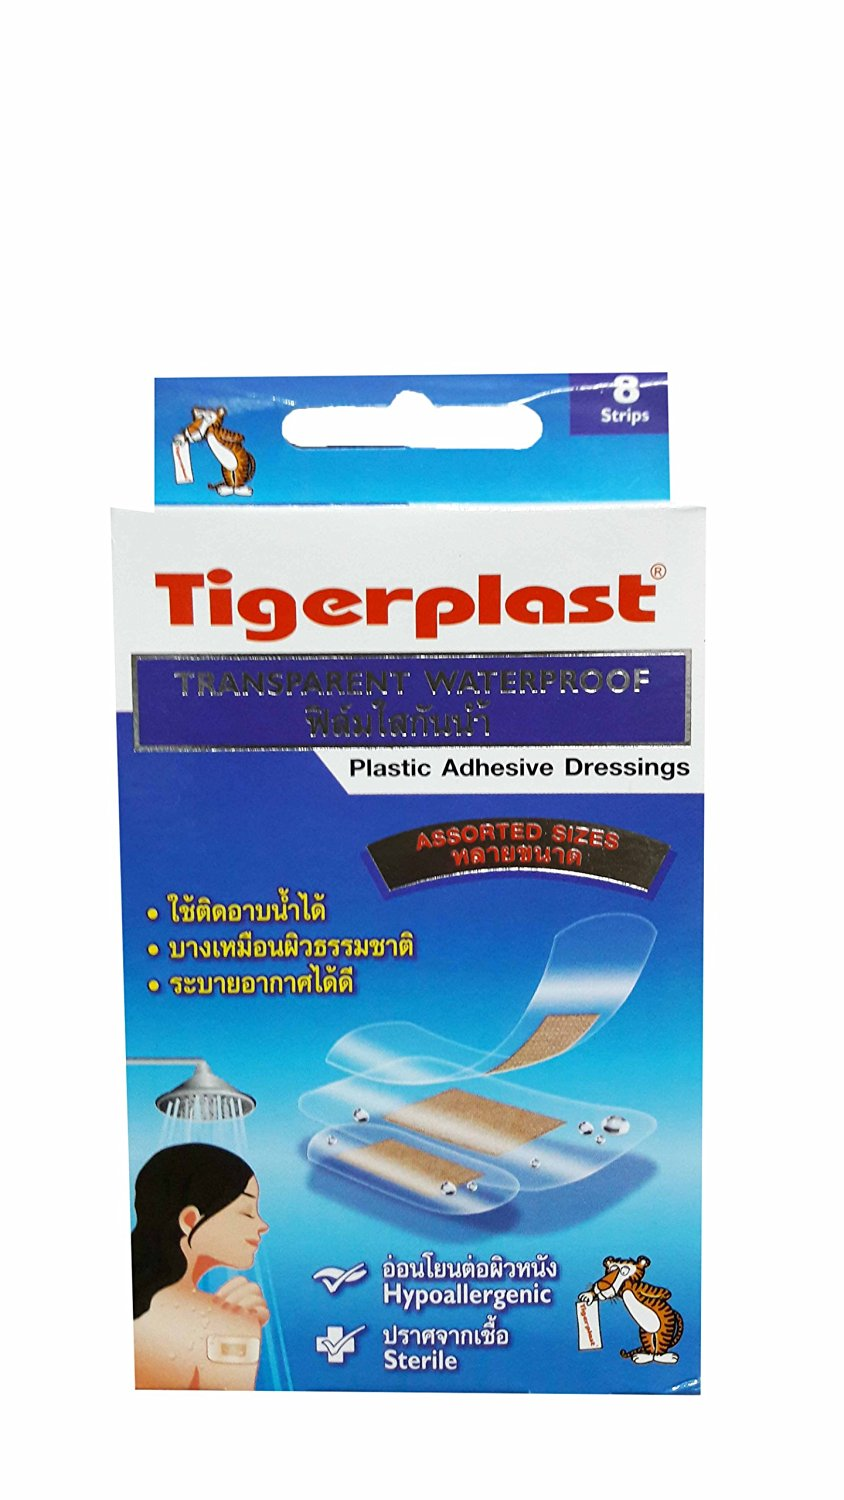 2 packs of Tigerplast Transparent Waterproof. Plastic Adhesive Dressings, Assorted Sizes, Waterproof, Transparent Film, Absorbent Pad, Non-stick Pad. (8 Strips/ pack)